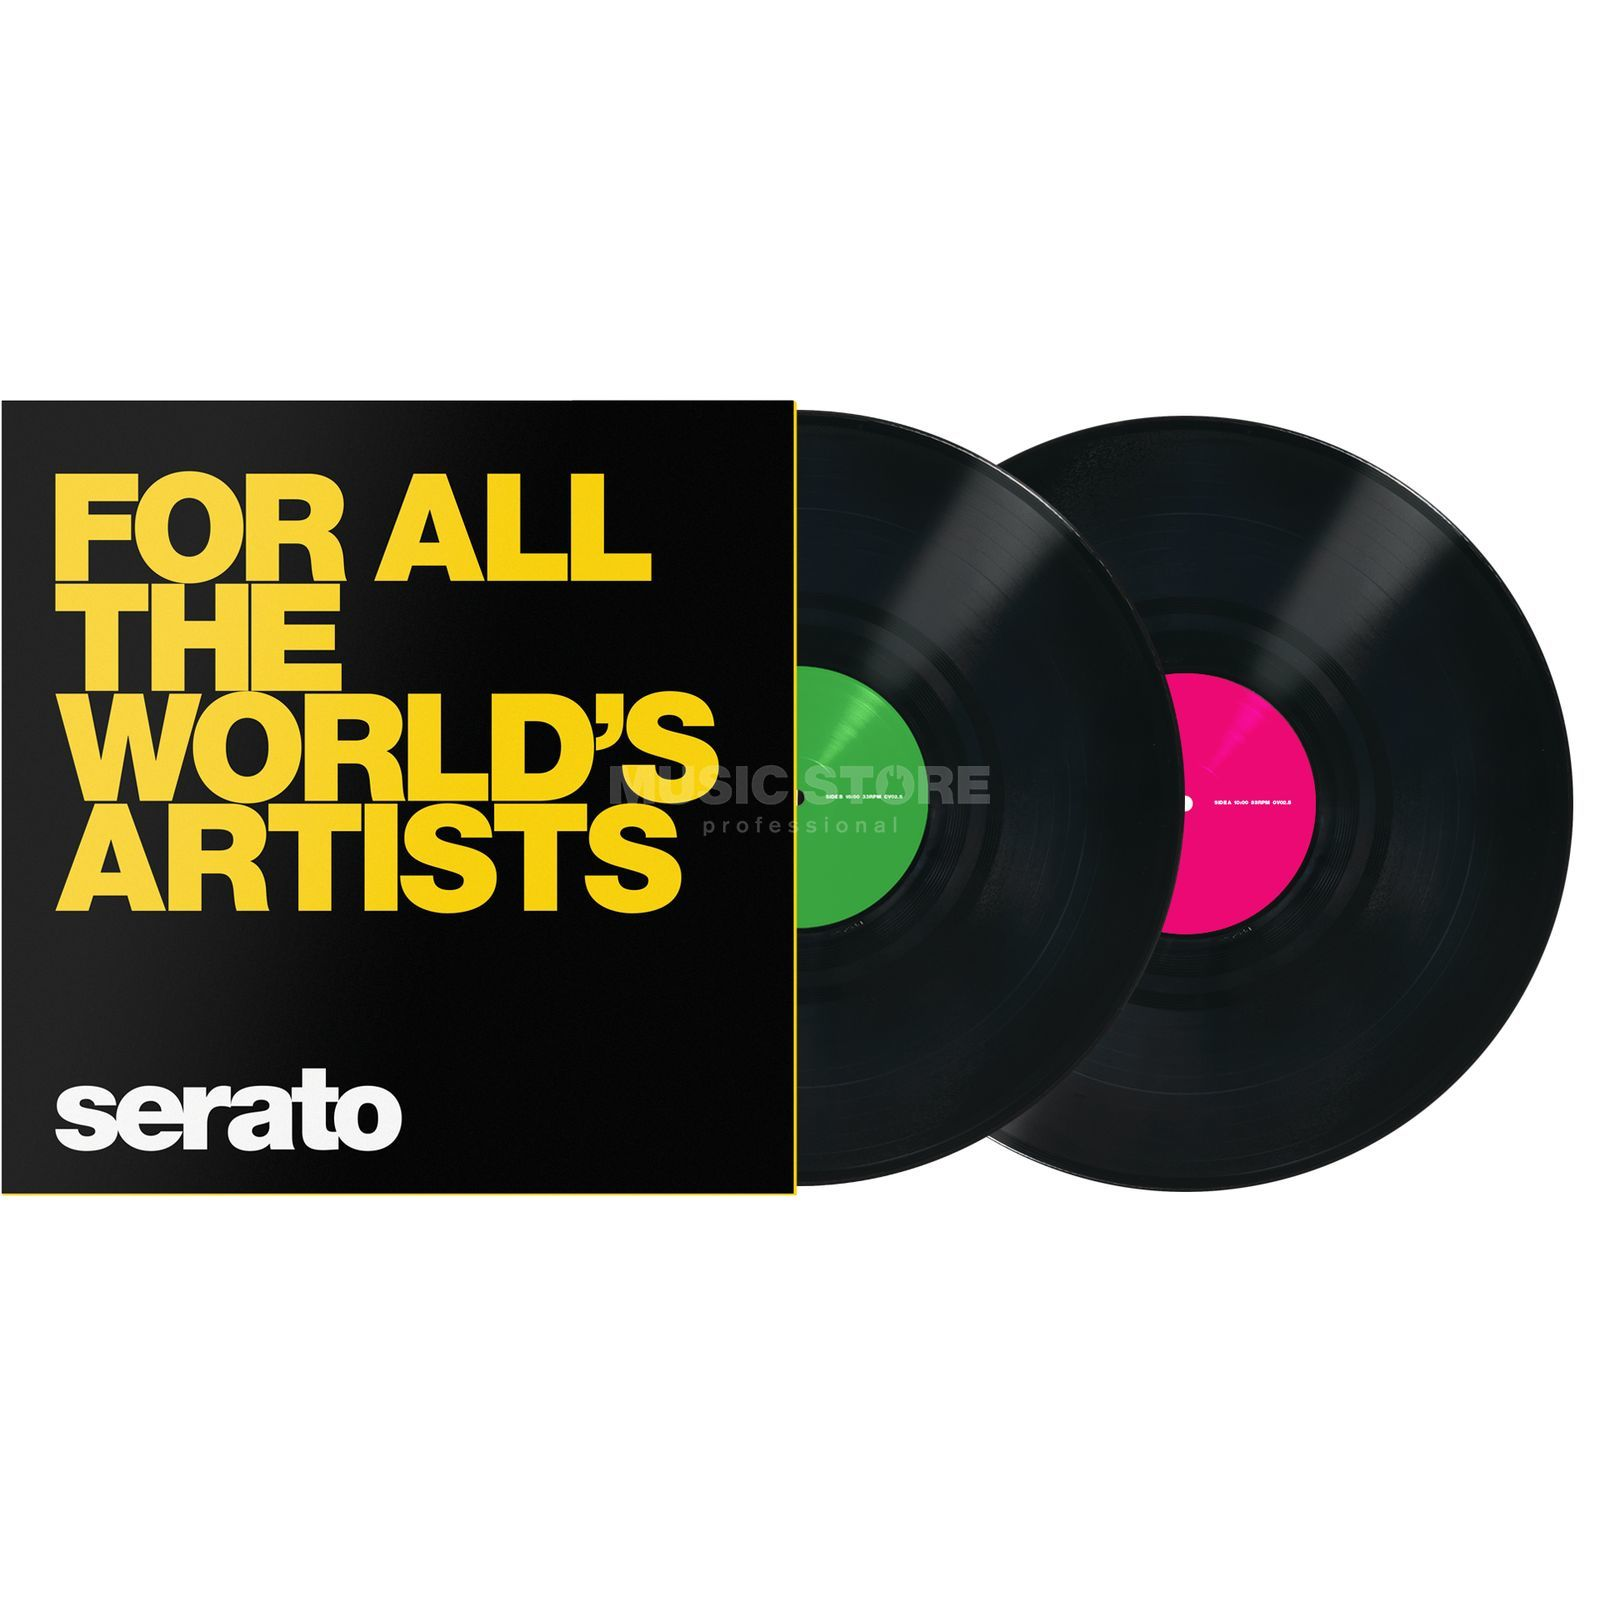 Serato Manifesto Control Vinyls Black, For All The Worlds Изображение товара